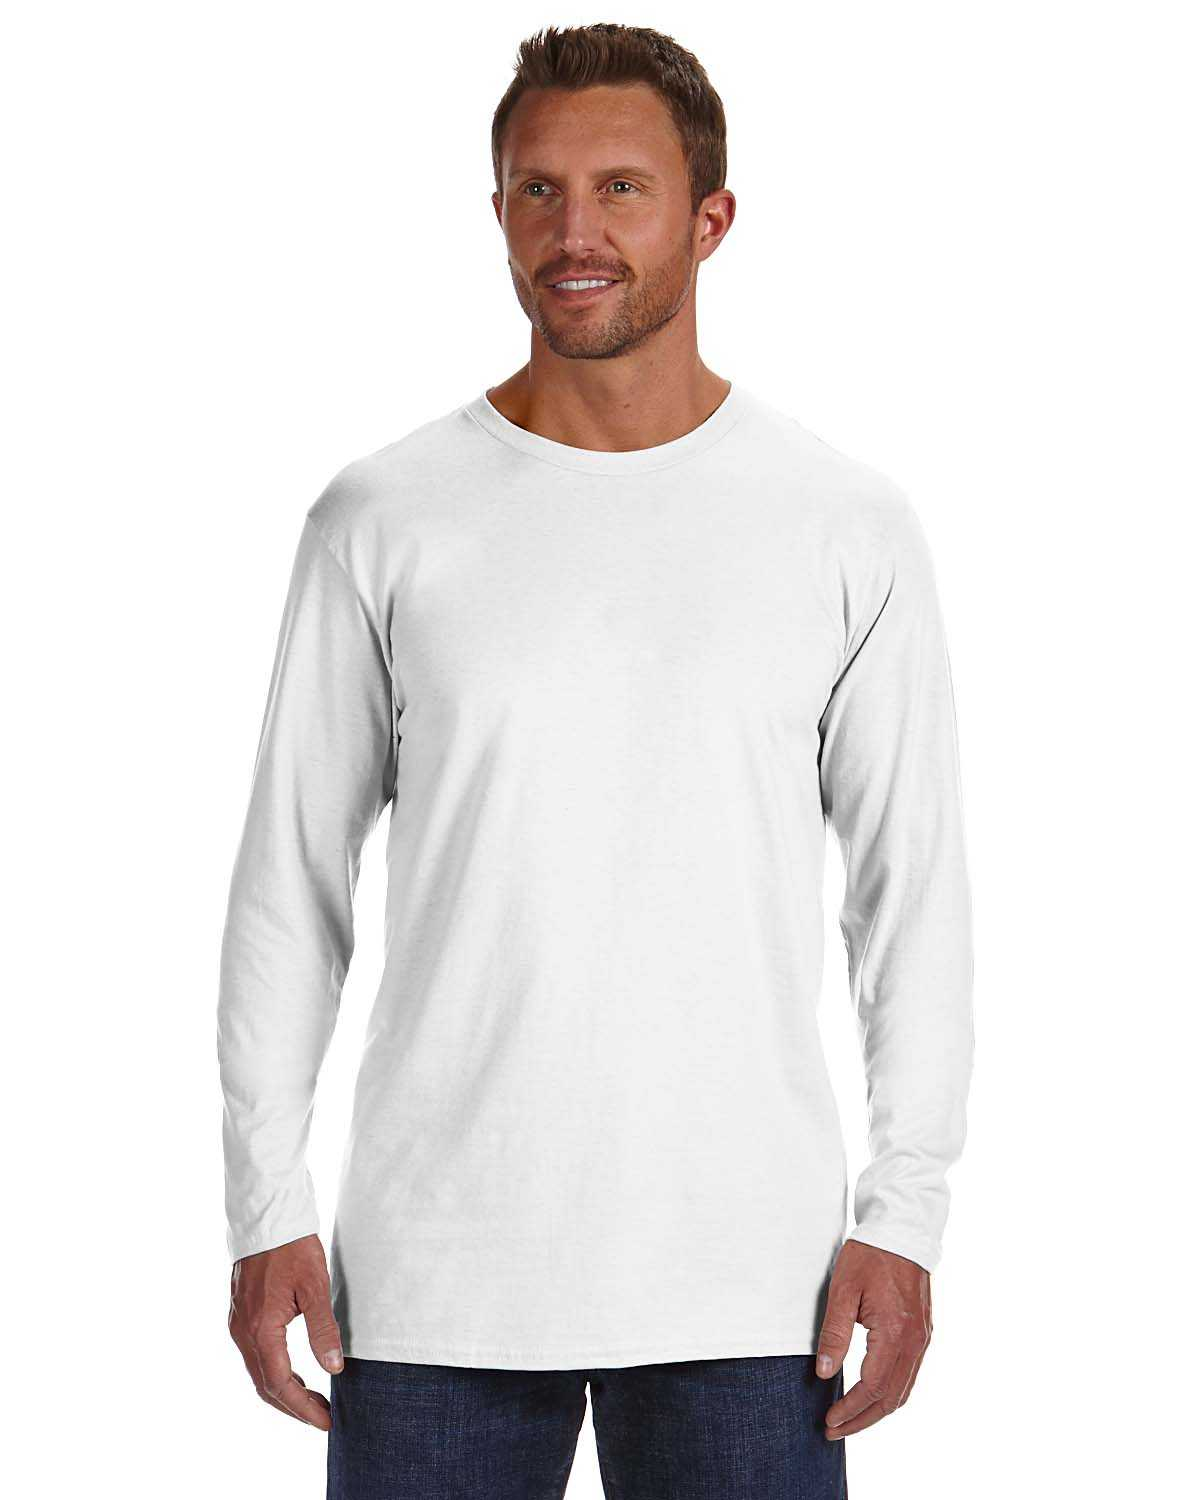 Hanes 498l men 39 s 4 5 oz 100 ringspun cotton nano t long for Mens 100 cotton long sleeve t shirts